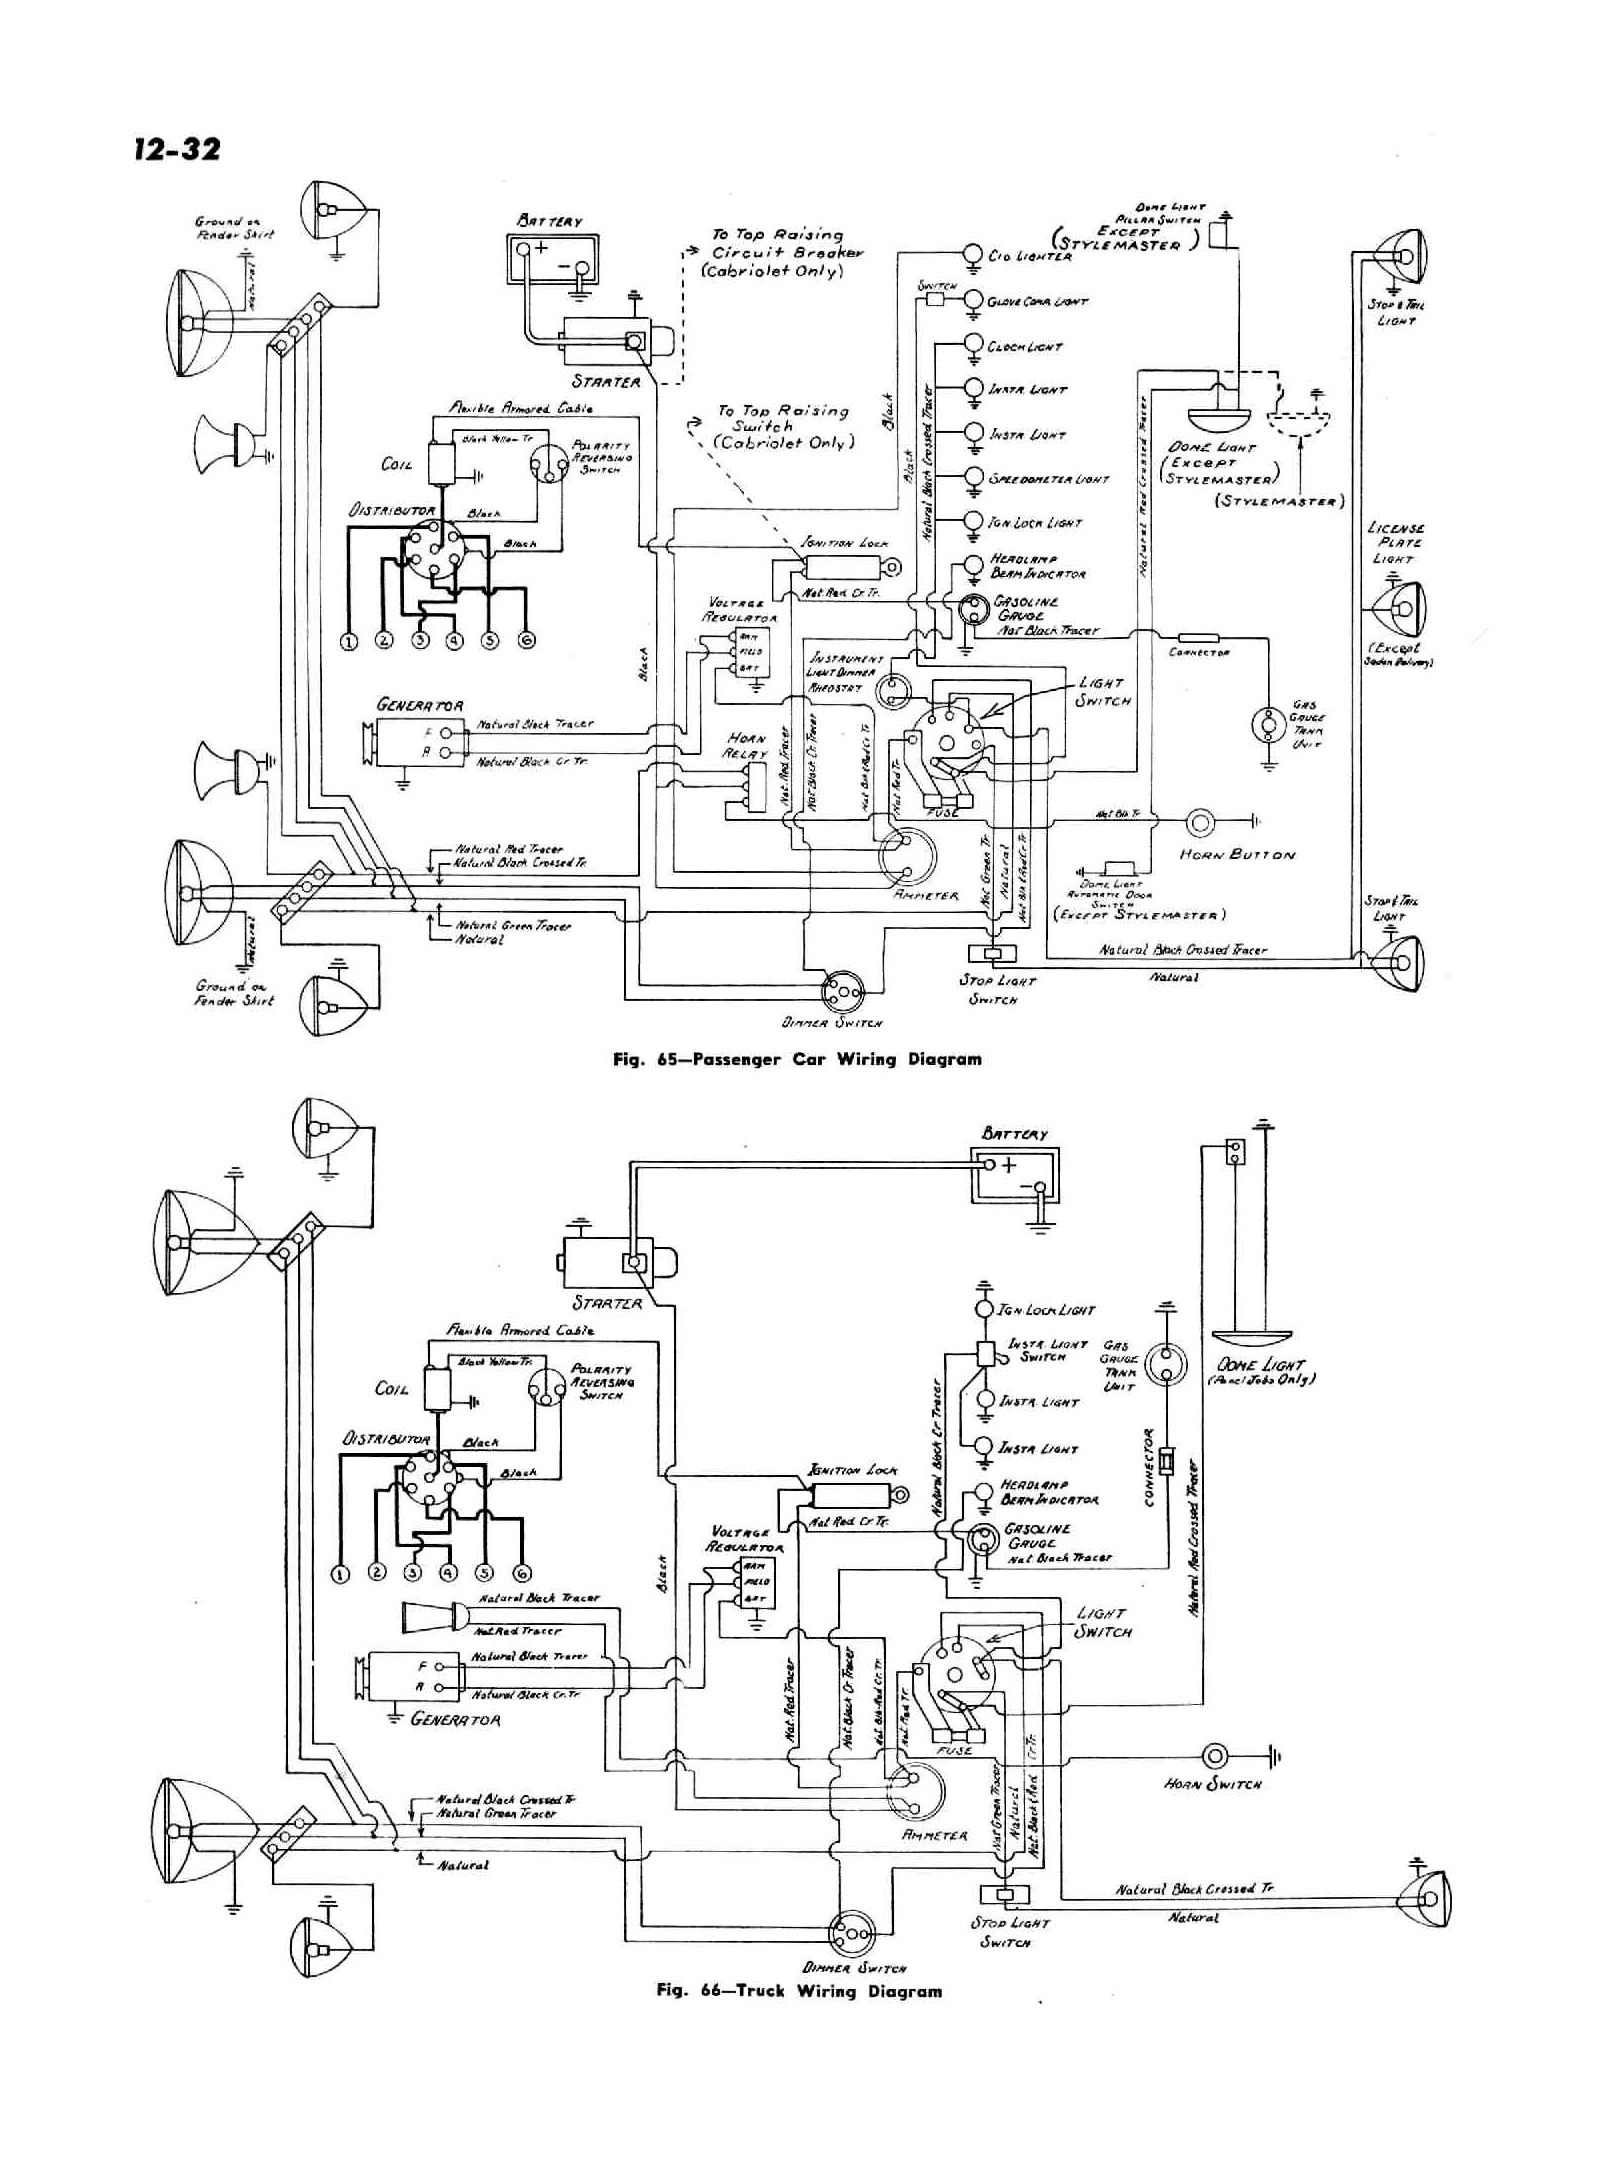 Sbc Engine Wiring Getting Ready With Diagram Test Stand 1066 International Tractor 1486